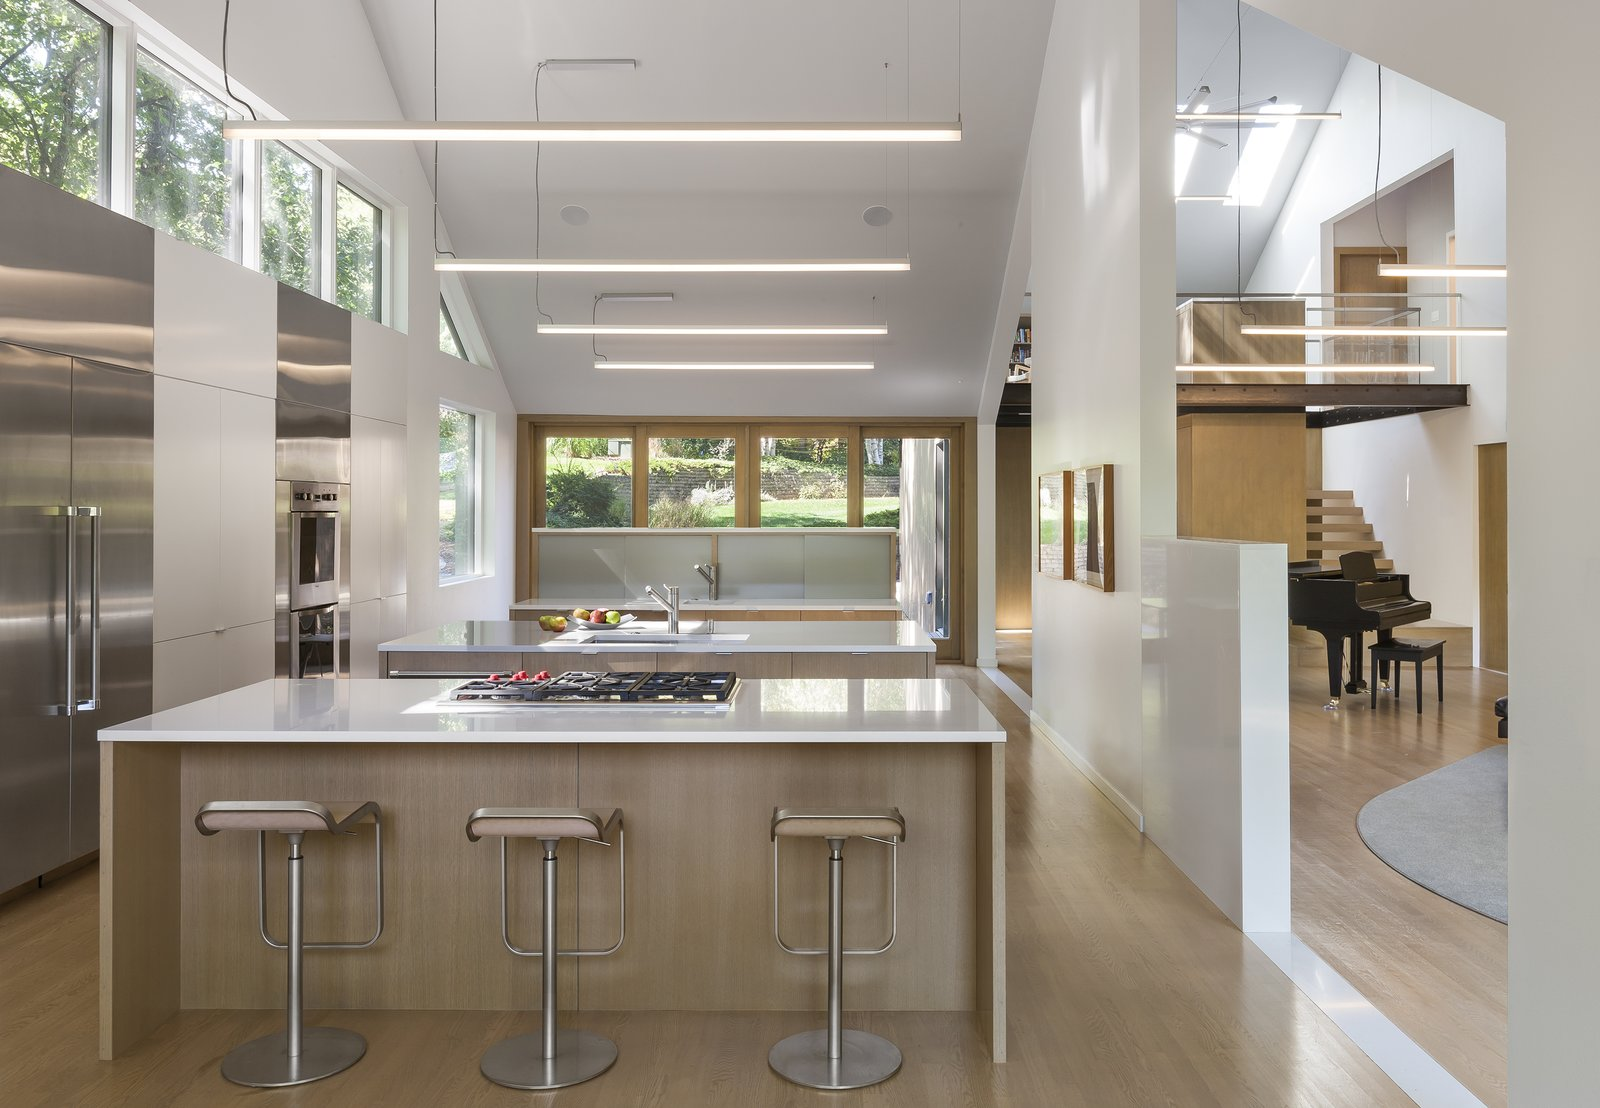 Tagged: Kitchen, Light Hardwood Floor, White Cabinet, and Refrigerator.  3LP Residence by Substance Architecture